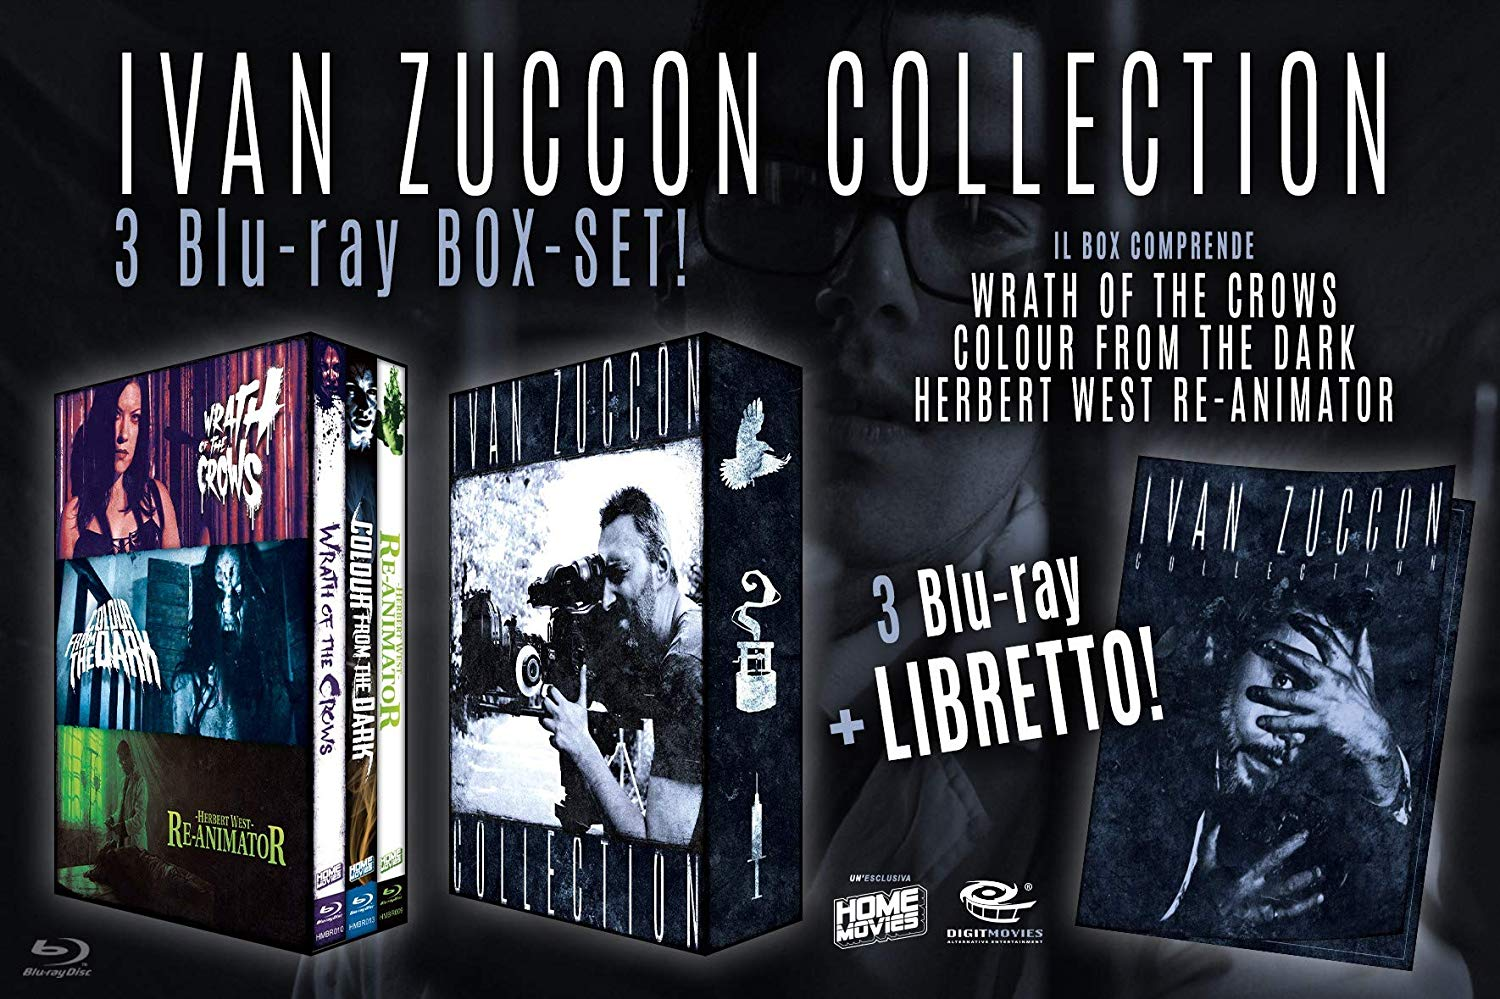 COF.IVAN ZUCCON COLLECTION - LIMITED EDITION 50CP (3 BLU_RAY + B